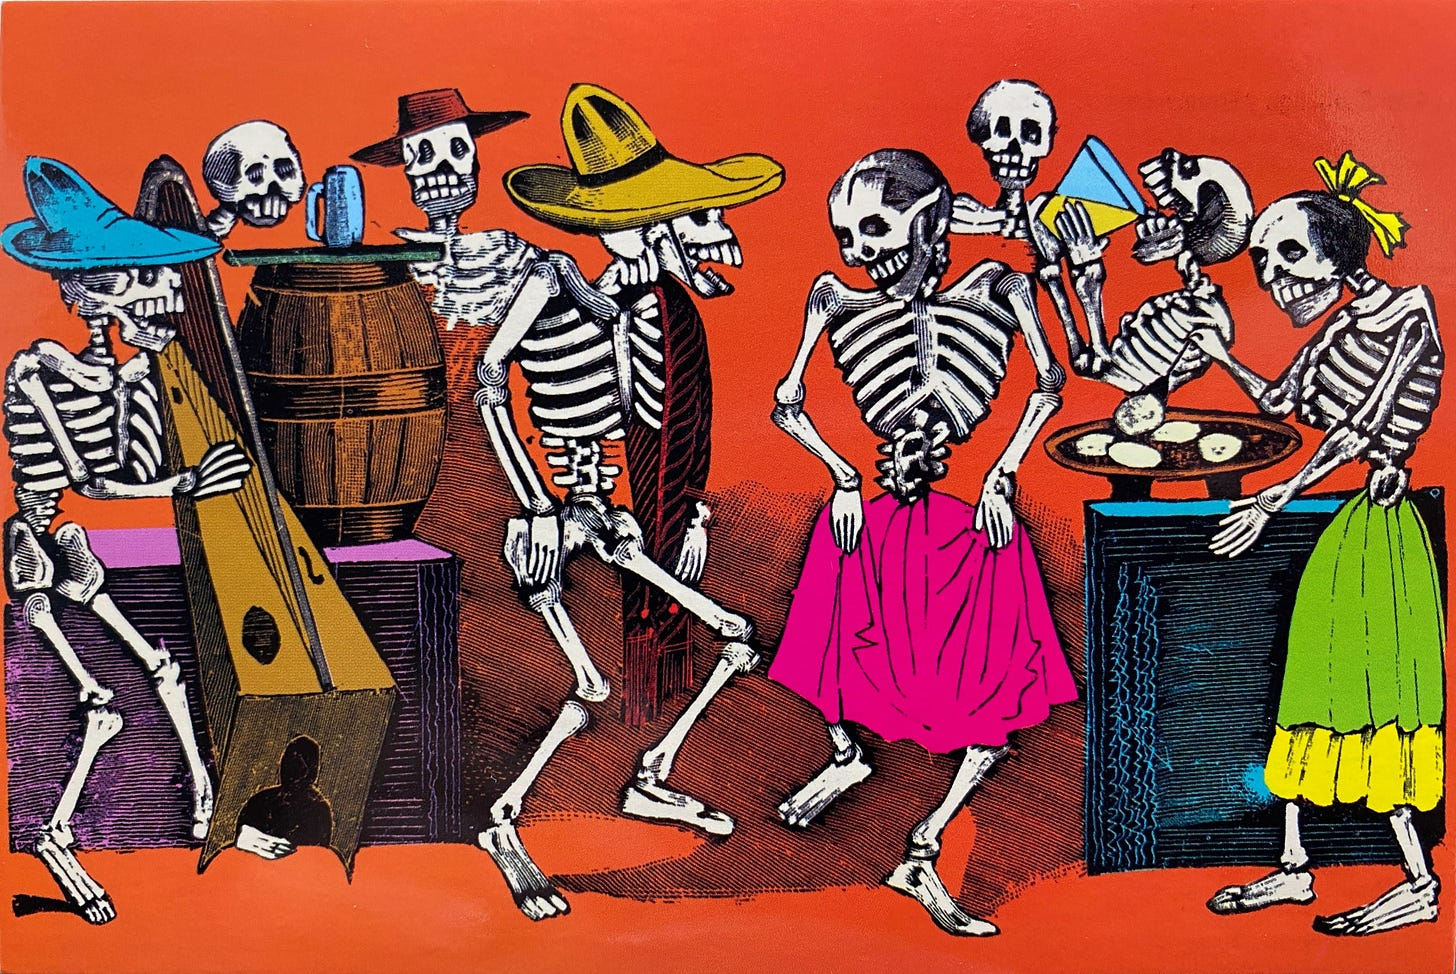 In the forefront, two skeletons, one with a sombrero, another one with a pink skirt, facing each other, dancing. Around them, a skeleton playing Mexican harp, another one cooking tortillas in a comal, other just drinking in the background.